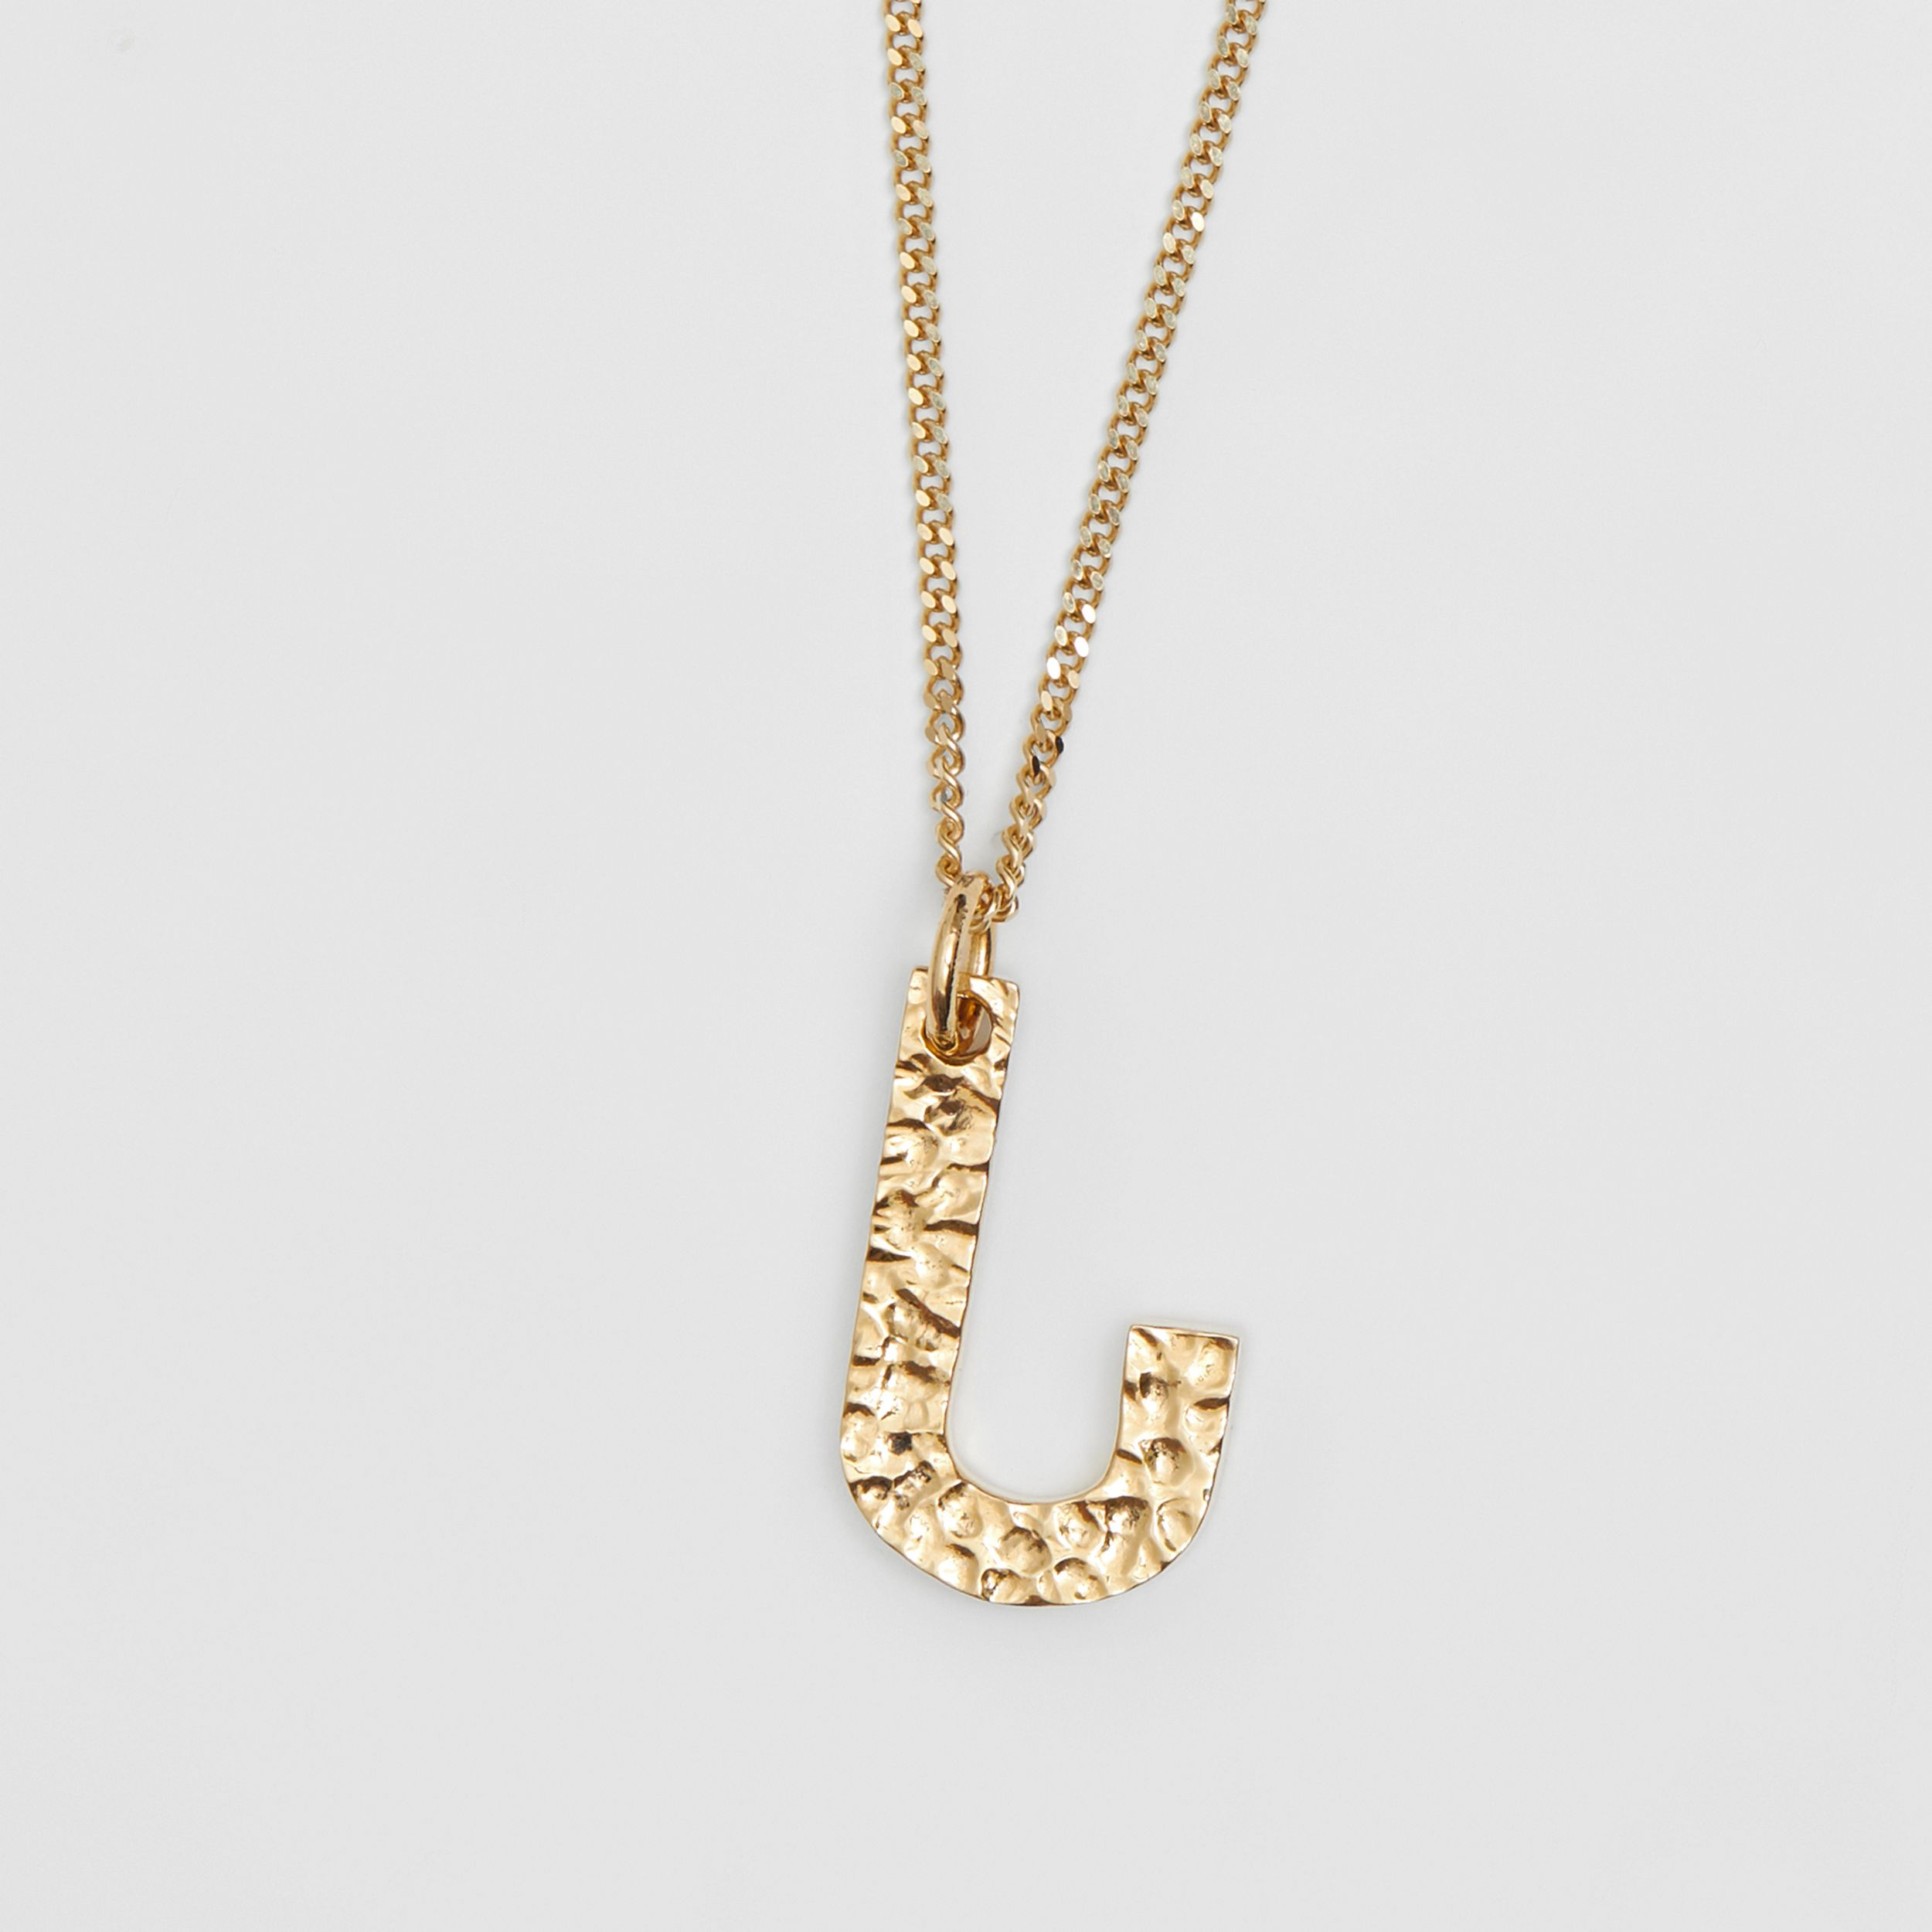 'J' Alphabet Charm Gold-plated Necklace in Light - Women | Burberry - 3